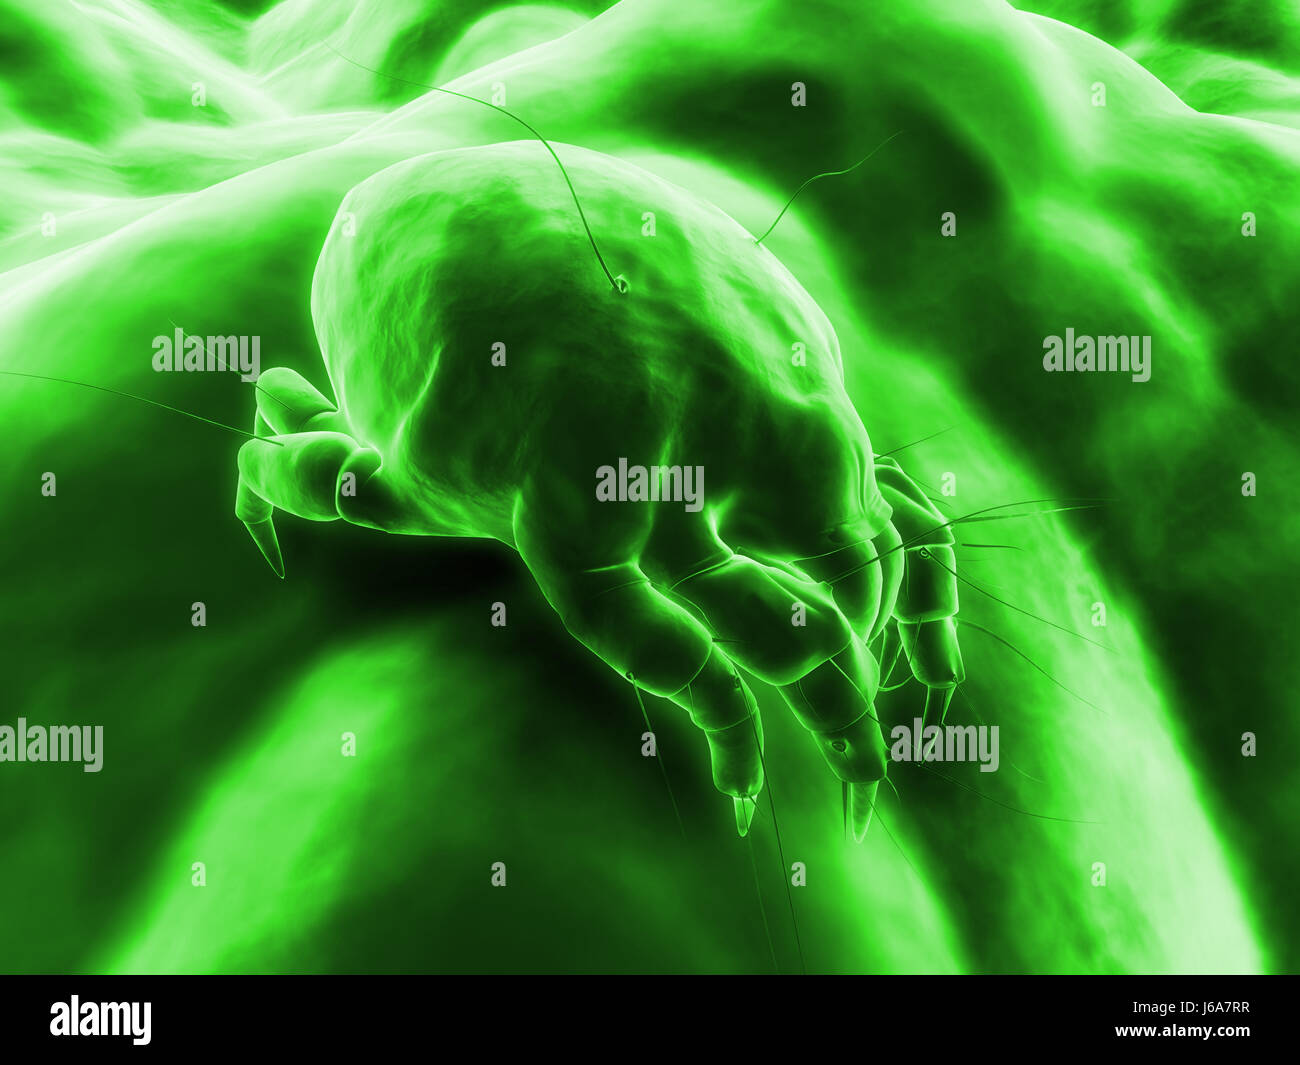 dust dusty hygiene allergy mite insect bed dirty bug bite micro electron marco - Stock Image